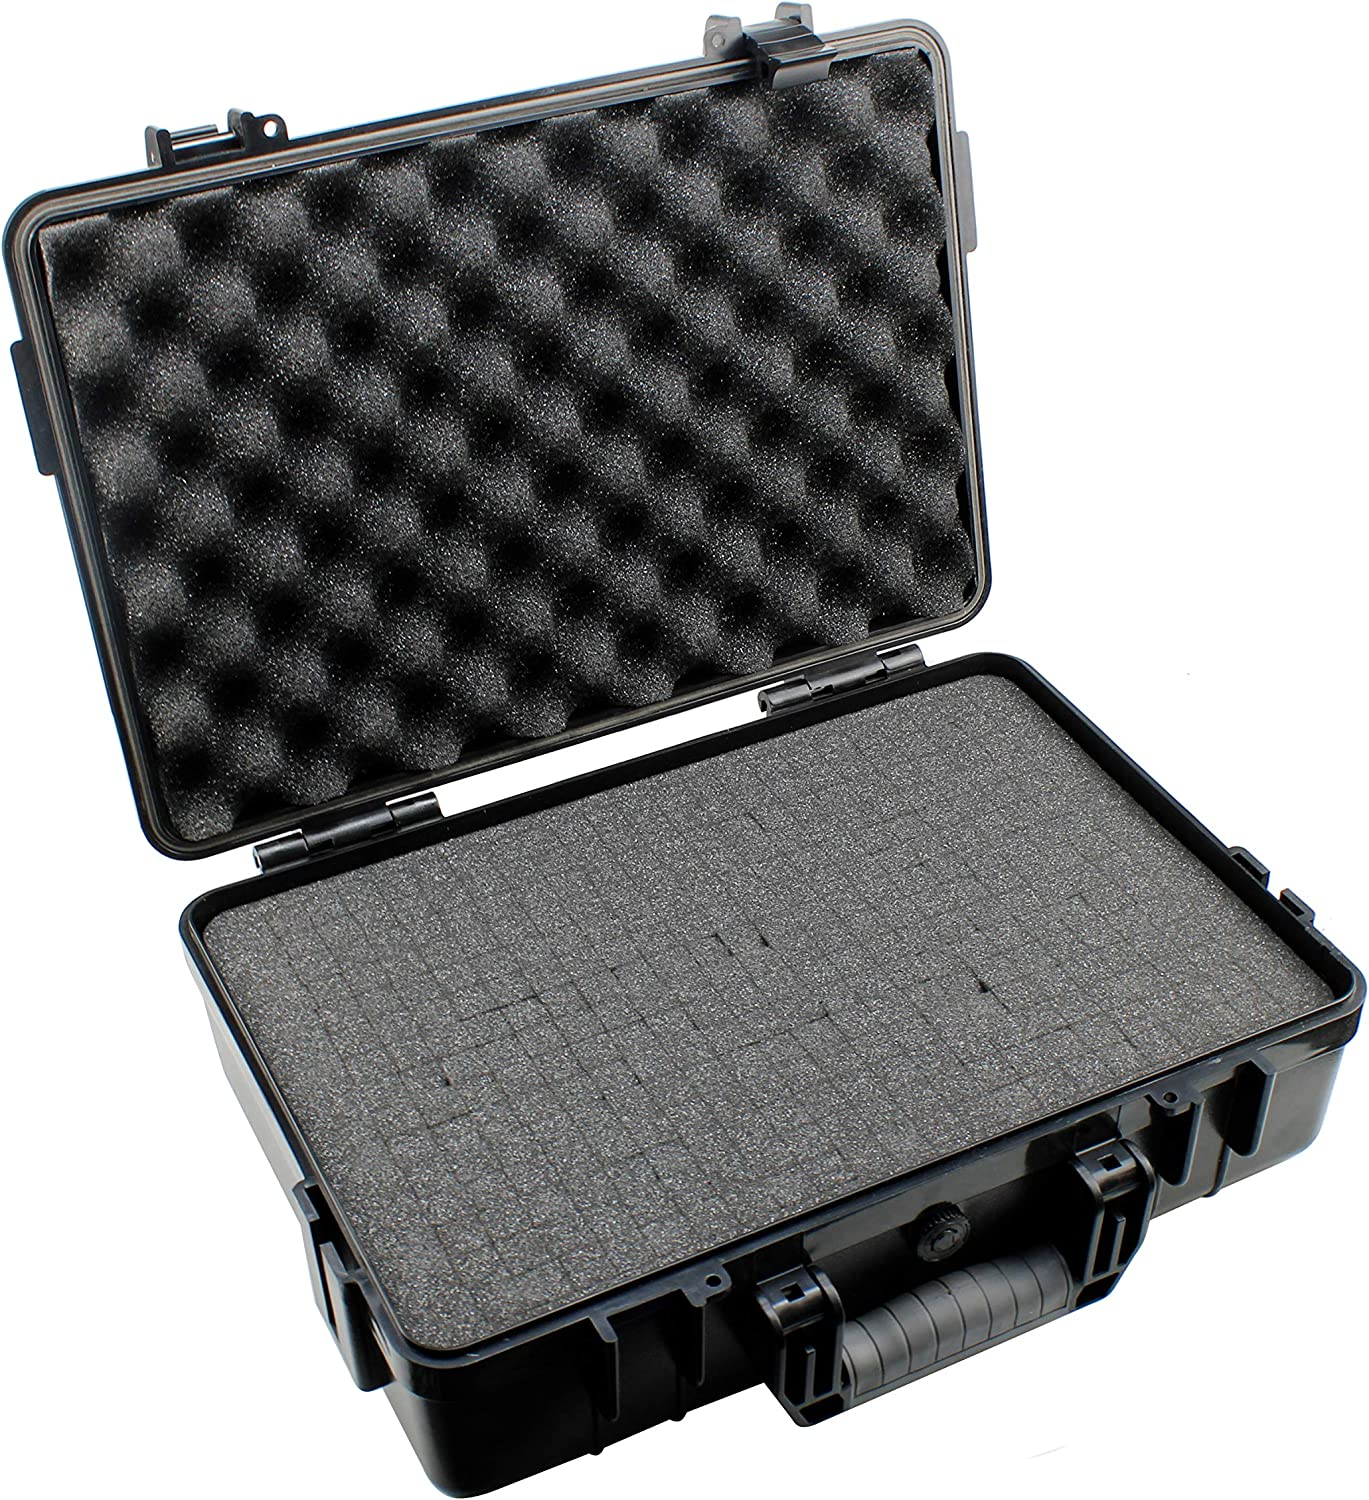 HFS (R) Portable Black All Weather Waterproof Camera Bag Protective Carrying Case with Foam